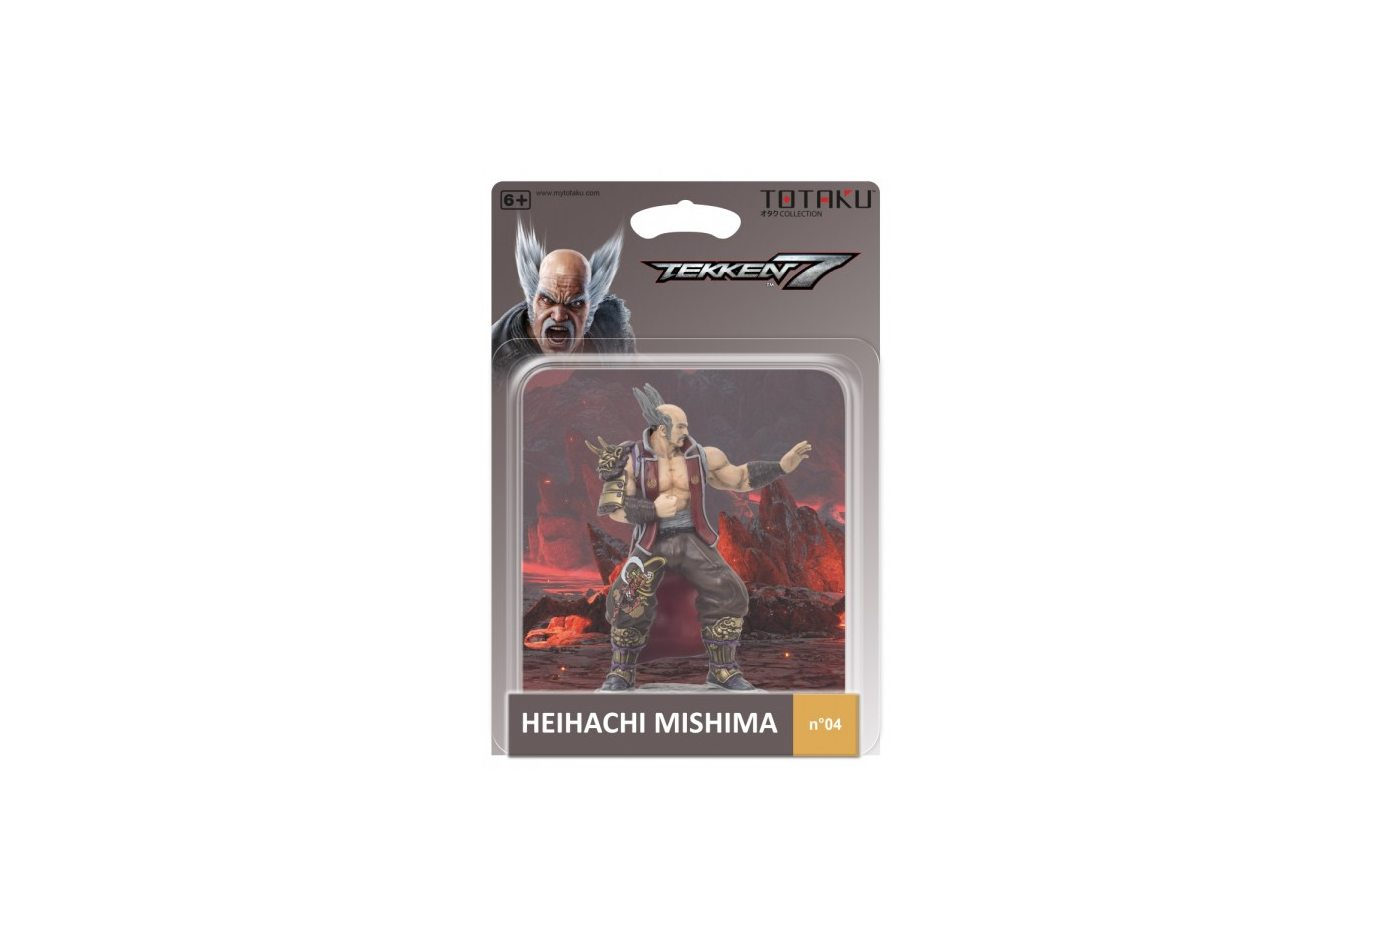 Фигурка TOTAKU Collection: Tekken 7 Heihachi Mishima 10 см